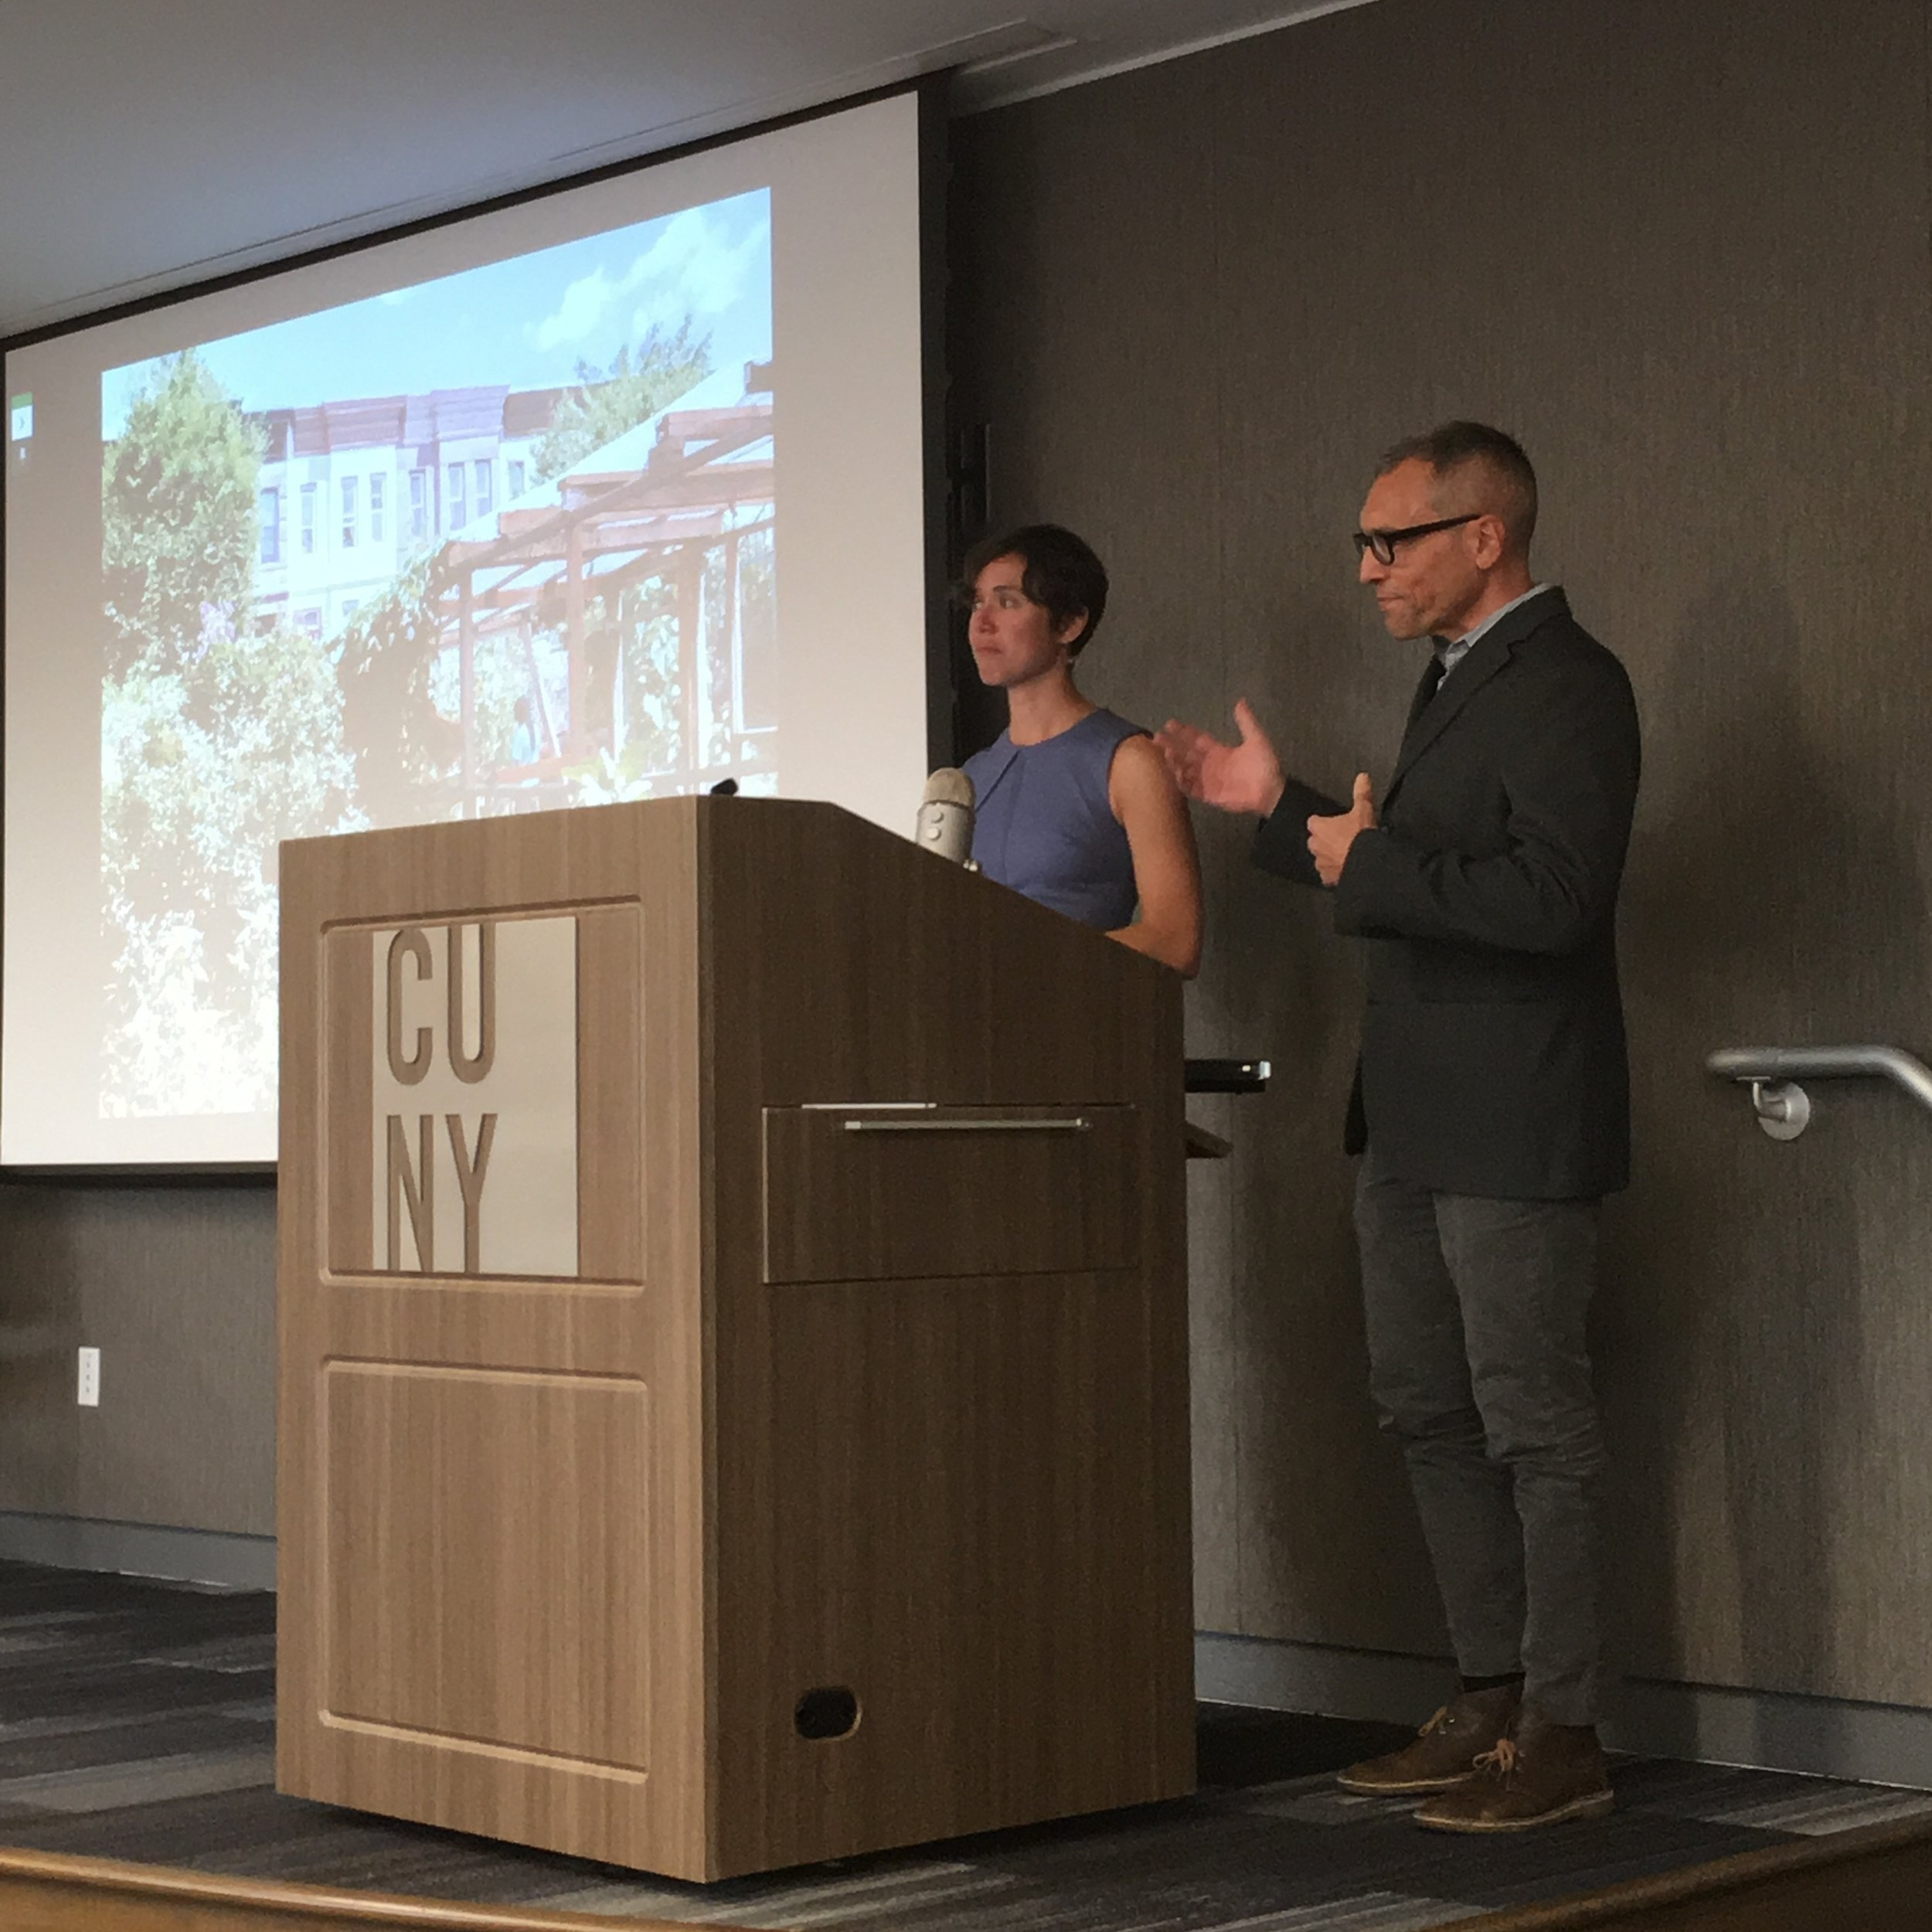 From left: Kristin Reynolds and Nevin Cohen present on October 19, 2016 at the CUNY Graduate School of Public Health and Health Policy